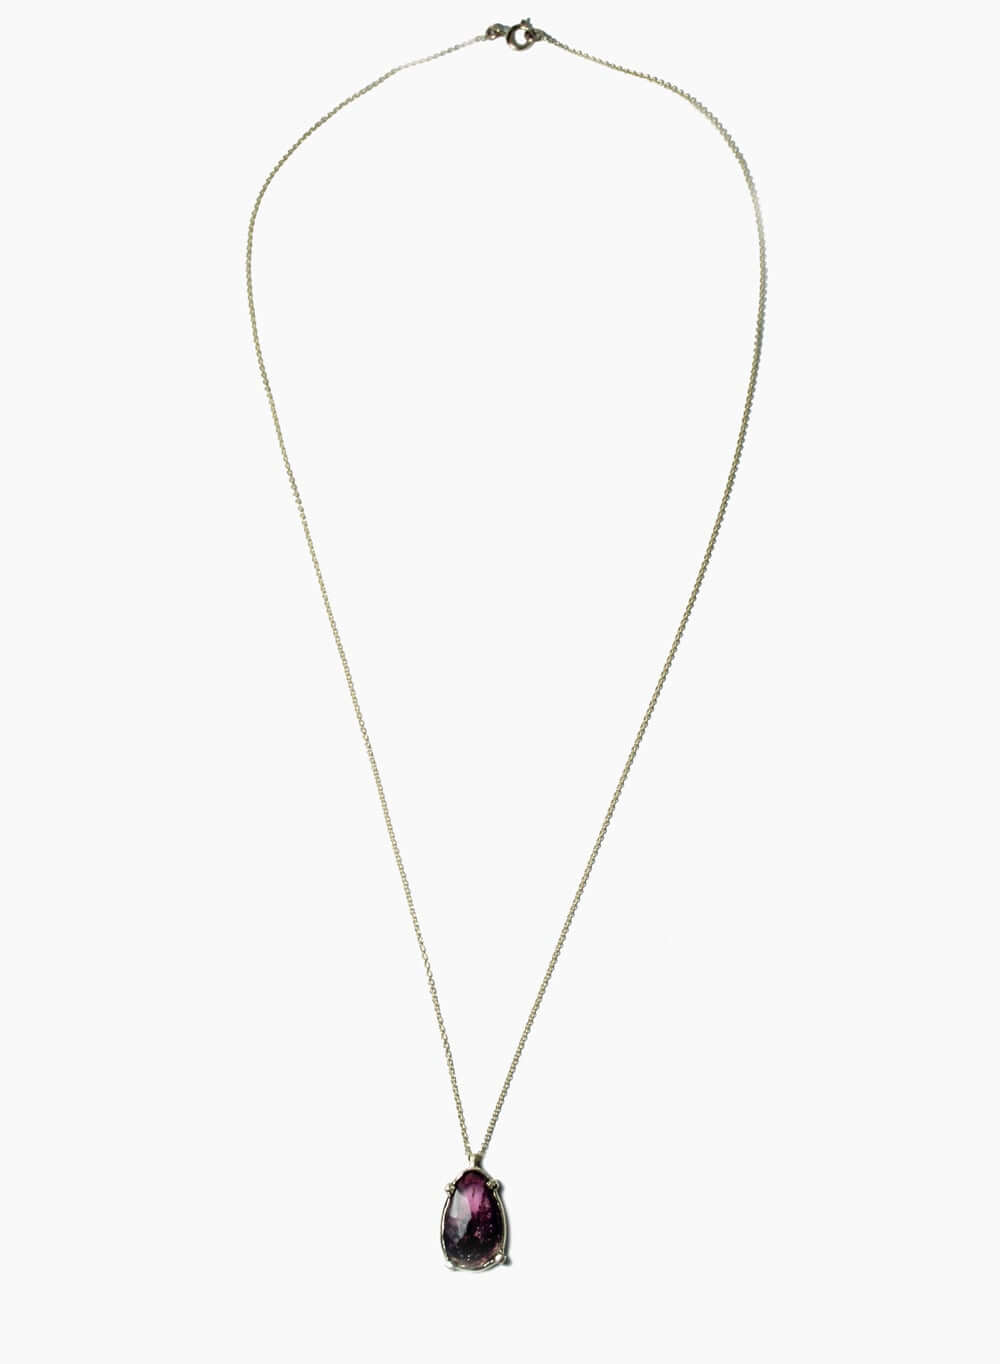 Thin Gold Chain Necklace with a Black and Cerise Organically Shaped Tourmaline Stone Slice